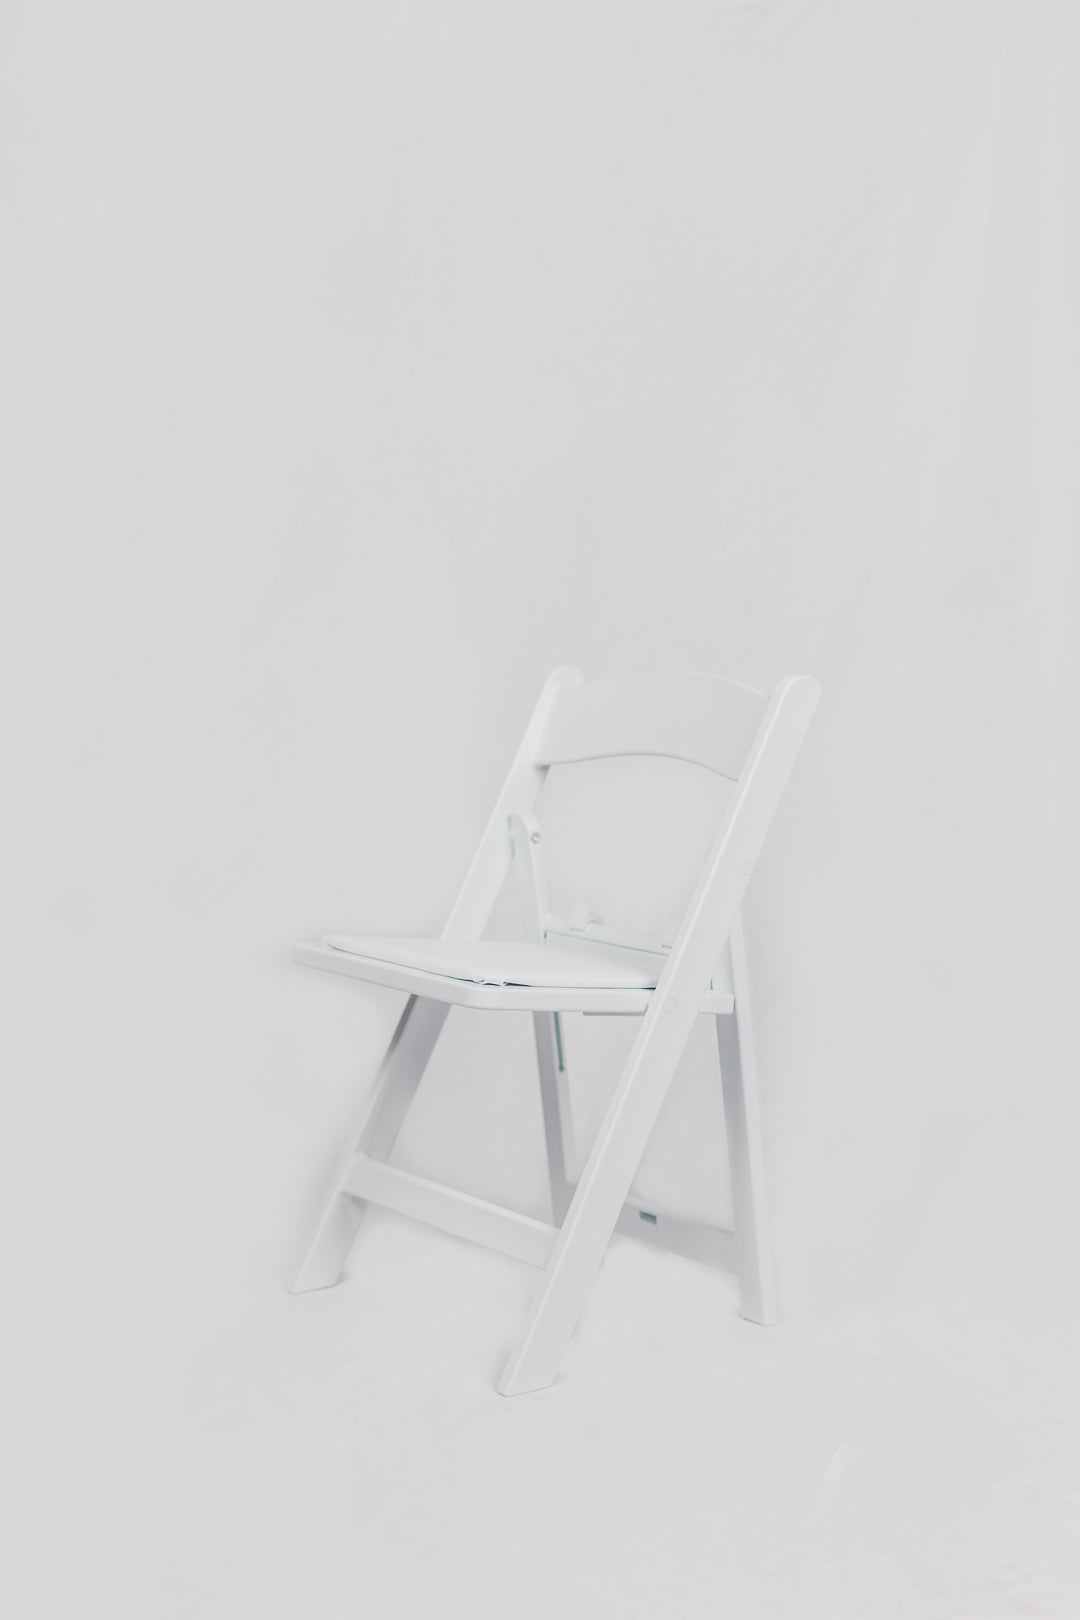 KIDS Americana Chairs - White 5 chairs @$25 each =$125